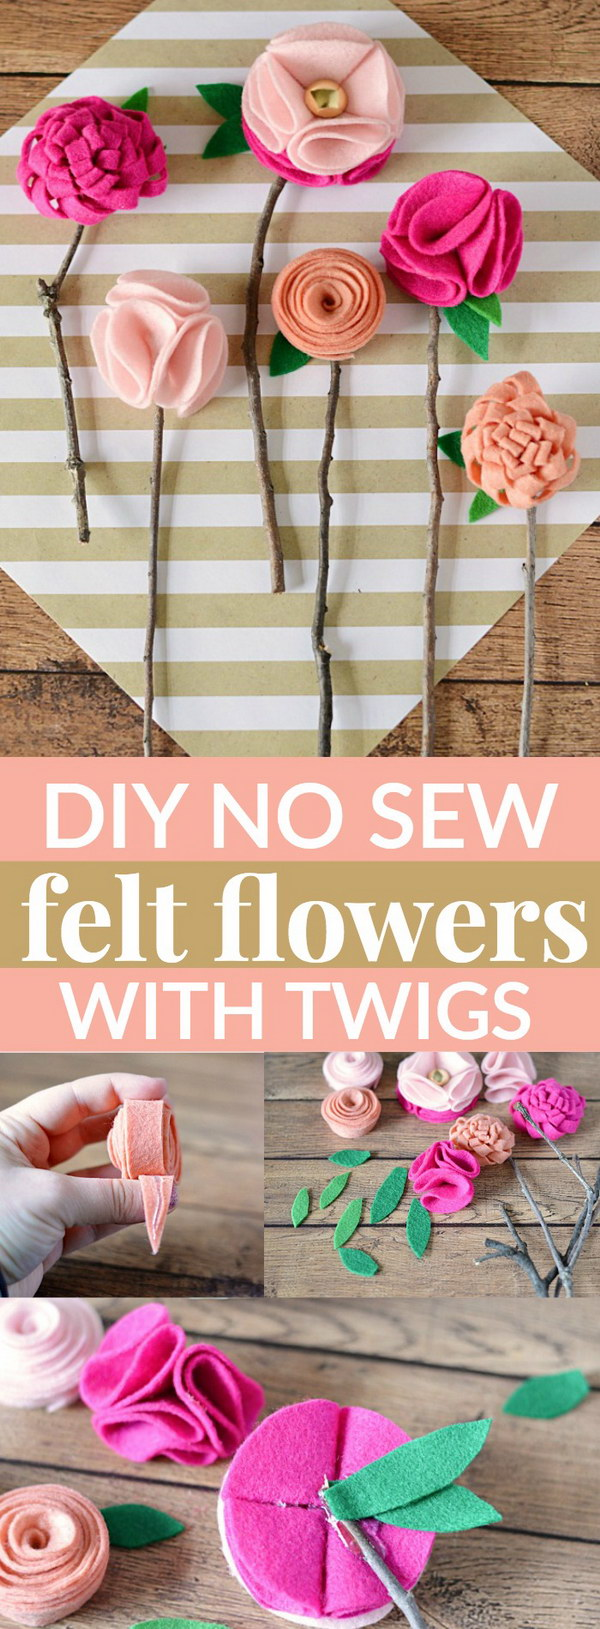 DIY No Sew Felt Flowers With Twigs For Decoration